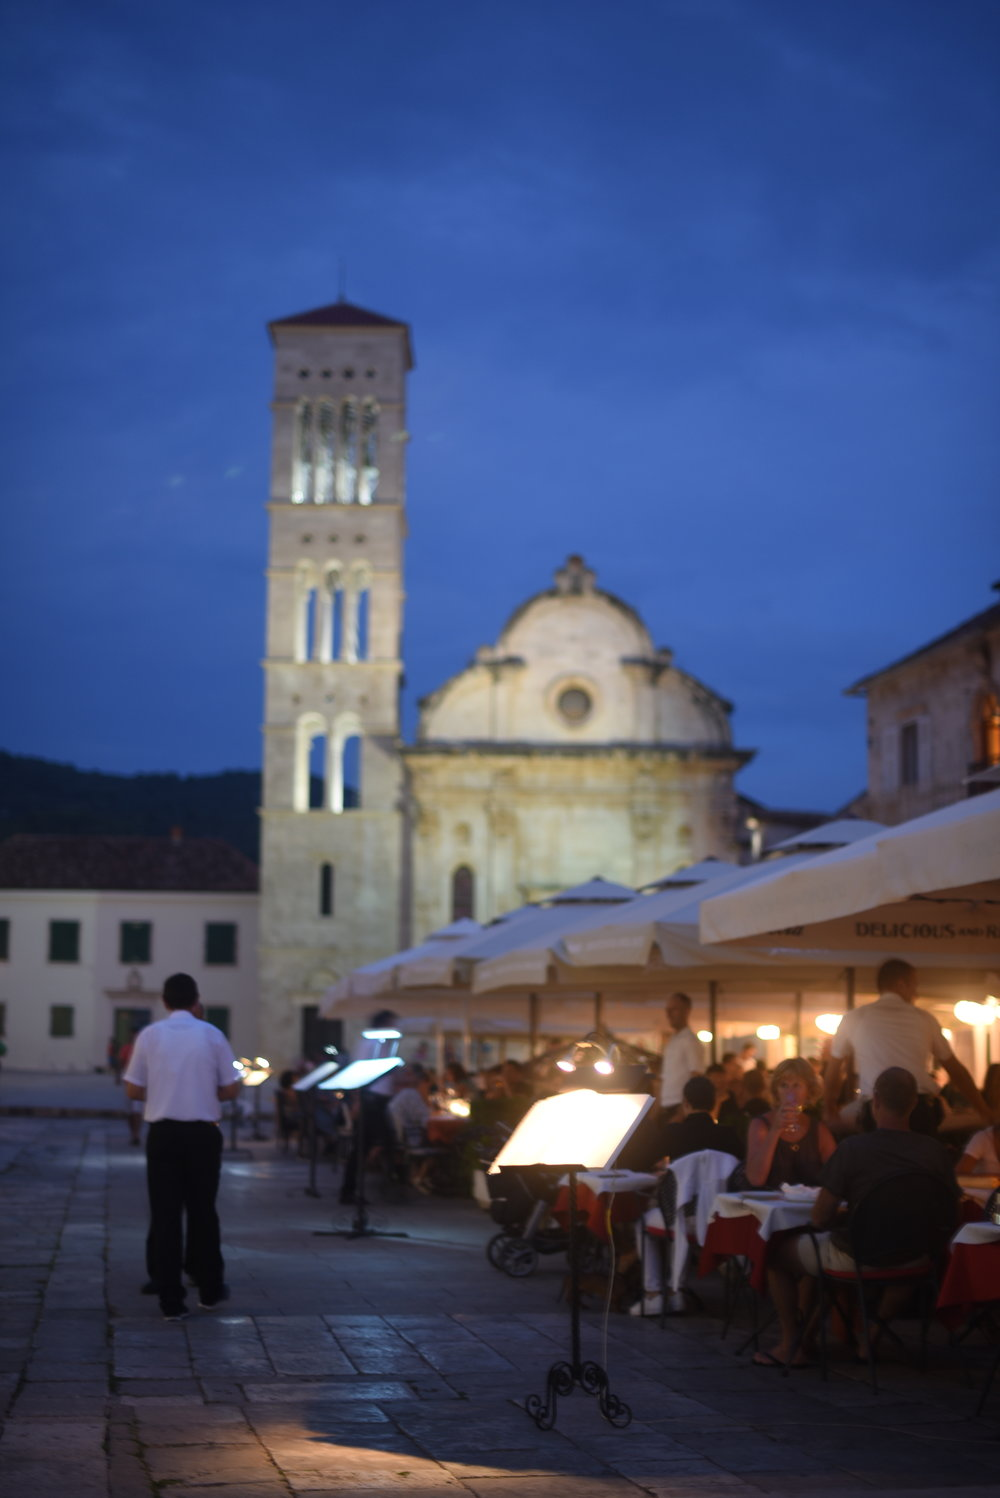 The main plaza in Hvar - a good place for dining before pursuing the town's world famous nightlife.